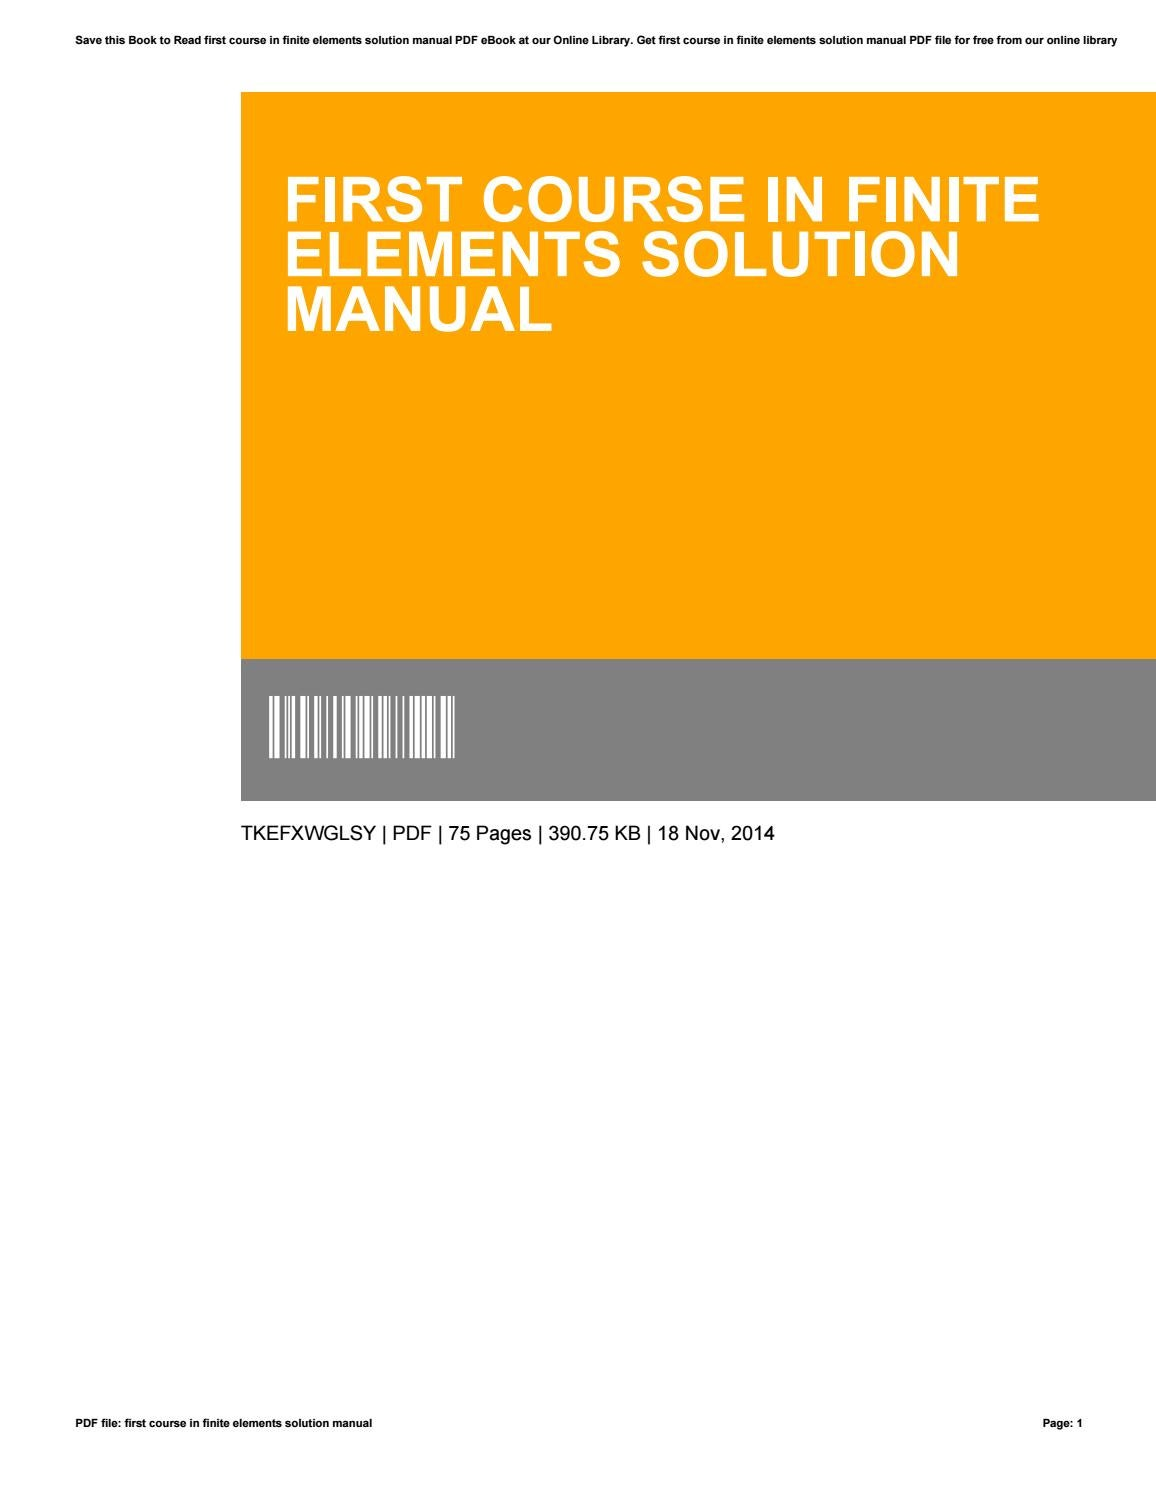 a first course in finite elements solution manual pdf